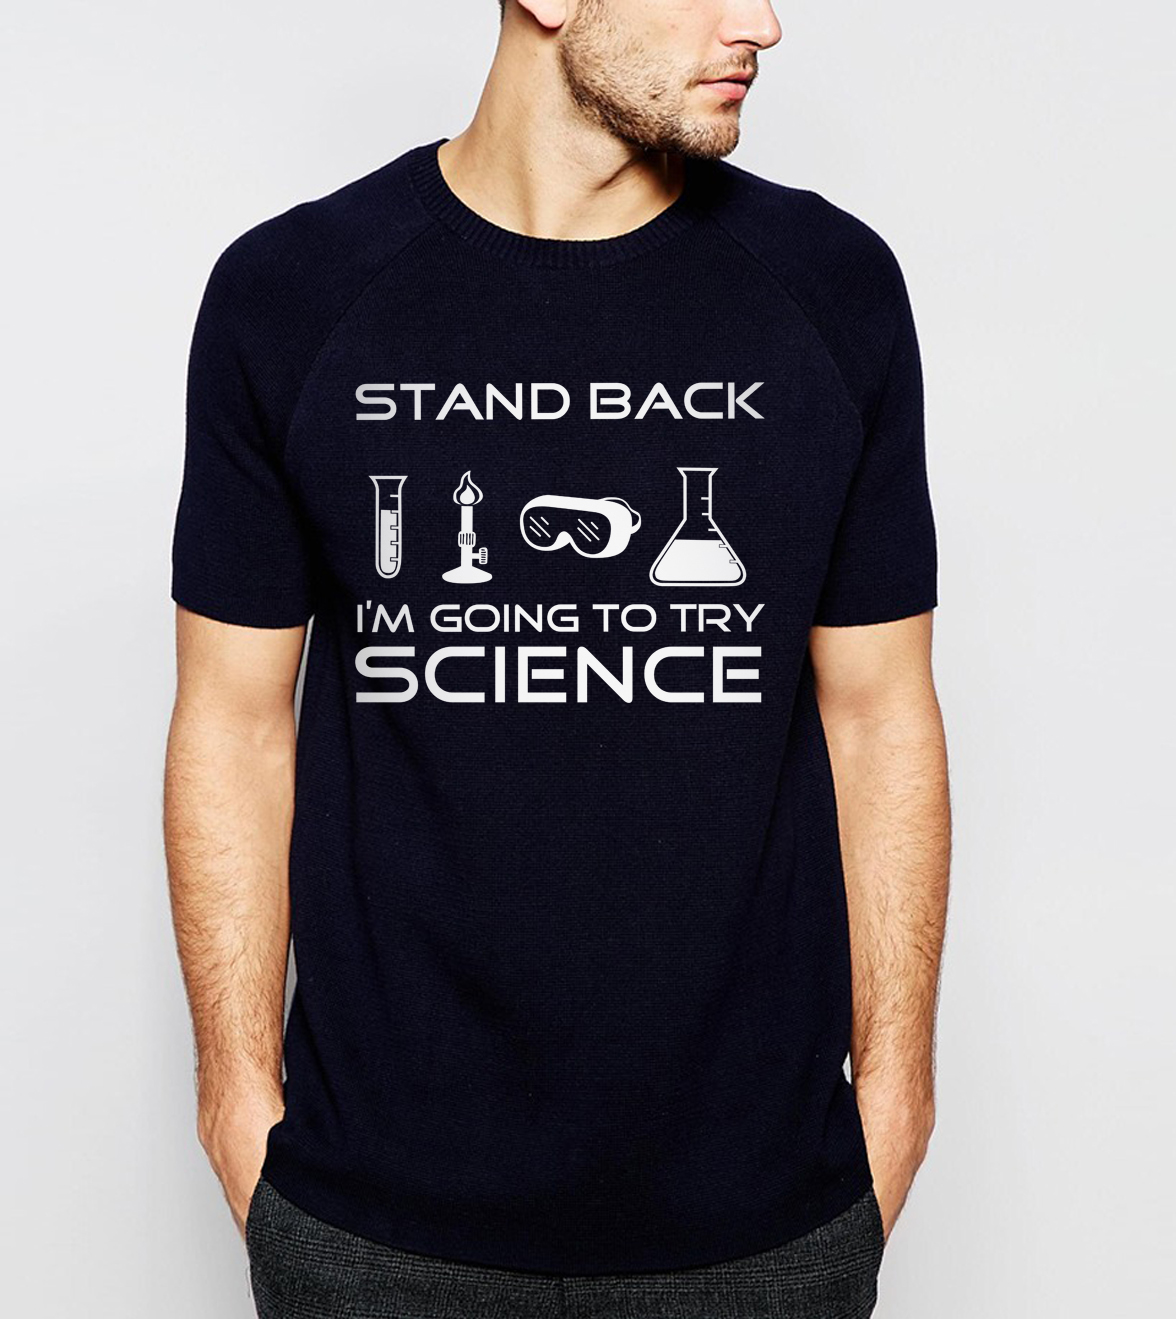 funny t shirts I'm Going To Try Science 2019 summer men  T-Shirts 100% Cotton High Quality streetwear slim fit tops tee S-3XL